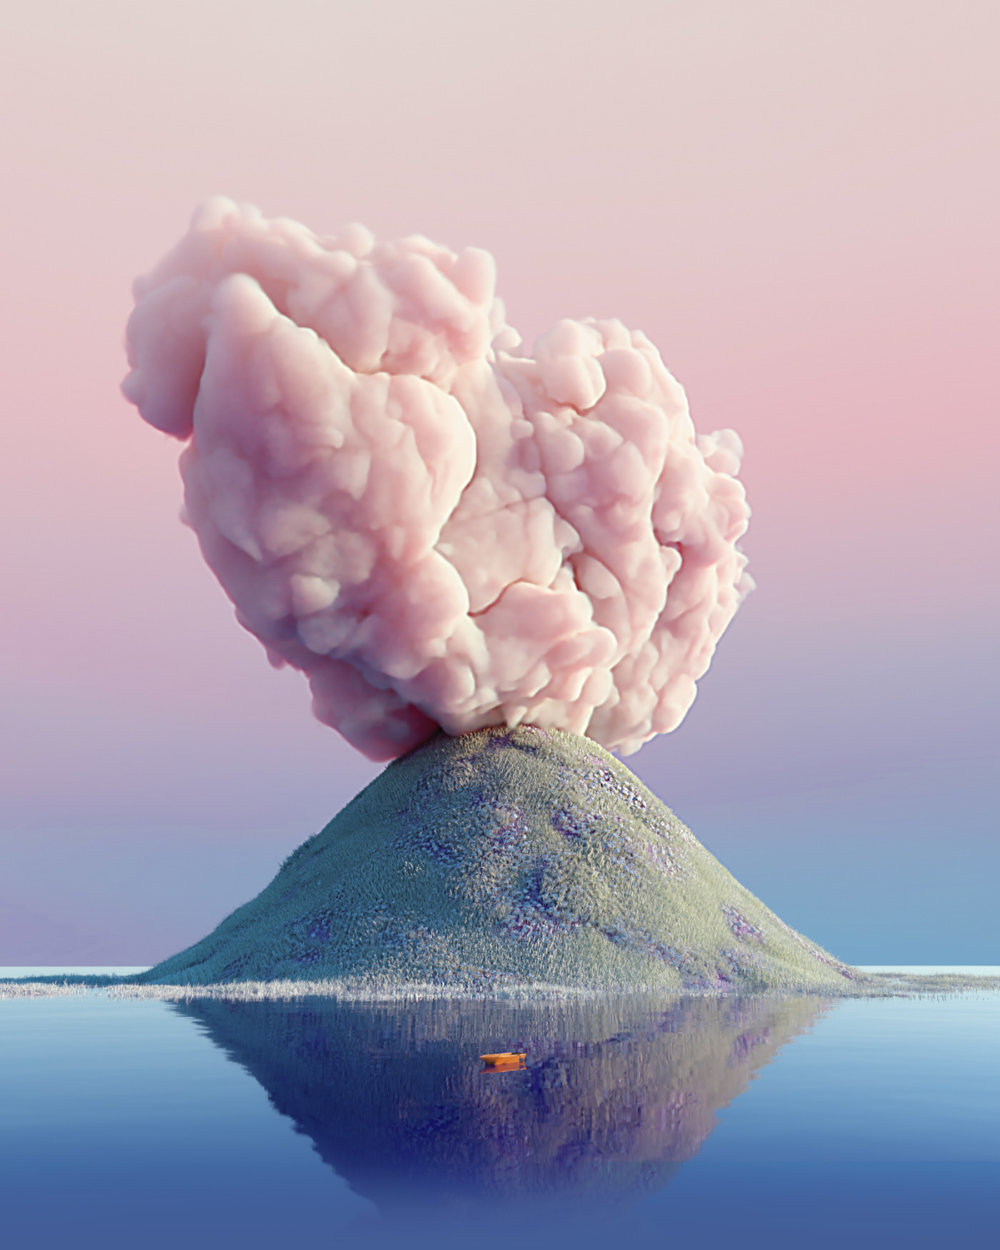 Dreamlands Amazing Digital Art Of Dreamy Surreal Landscapes By Yomagick 2